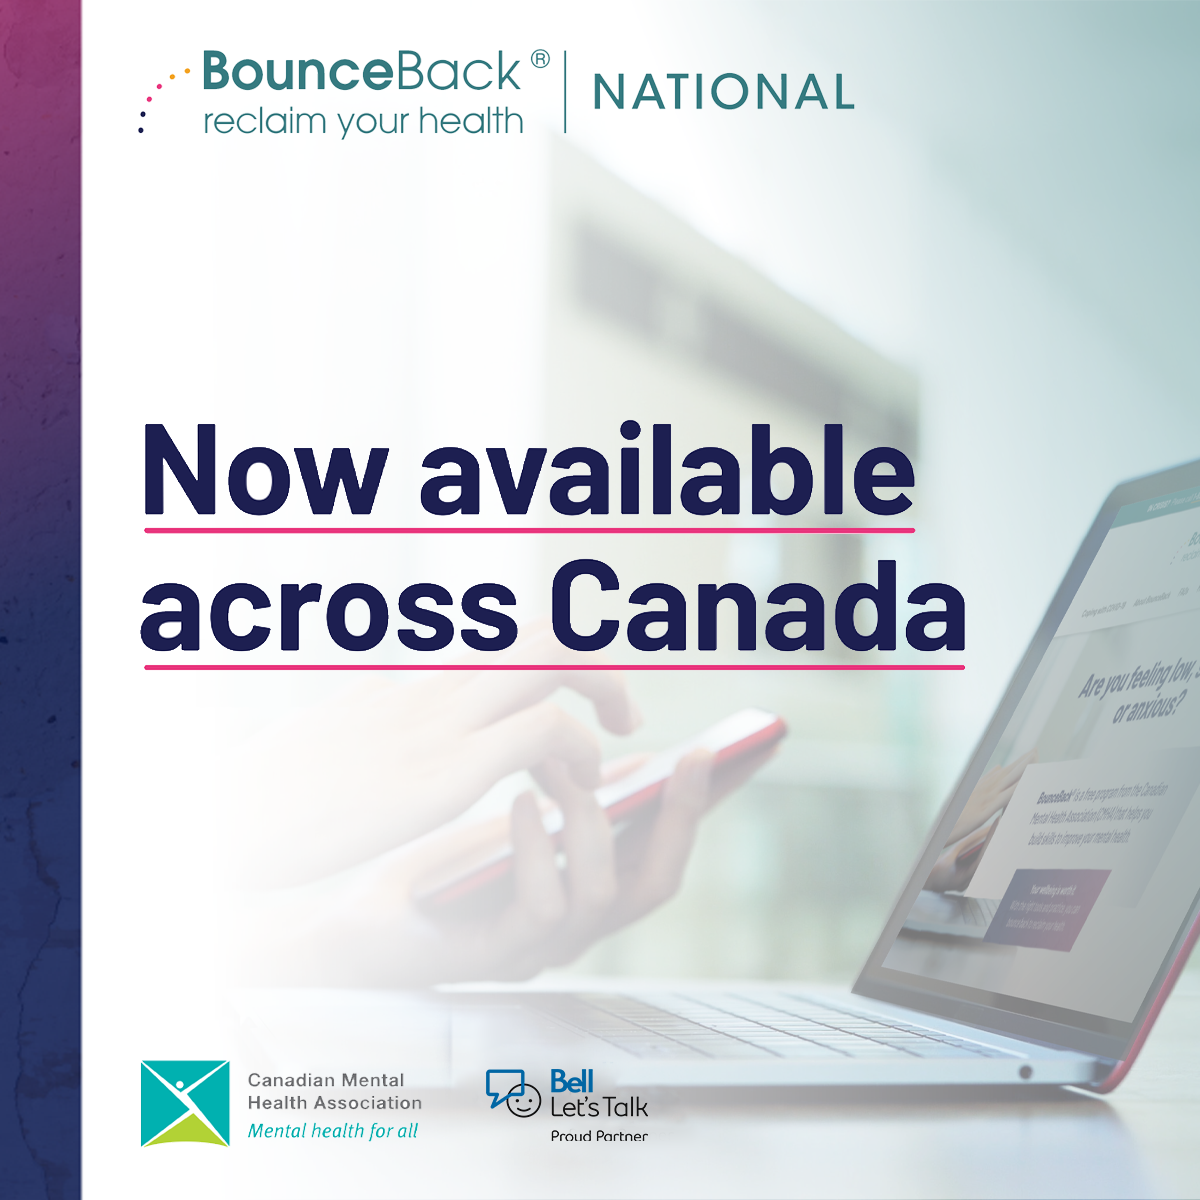 BounceBack - National